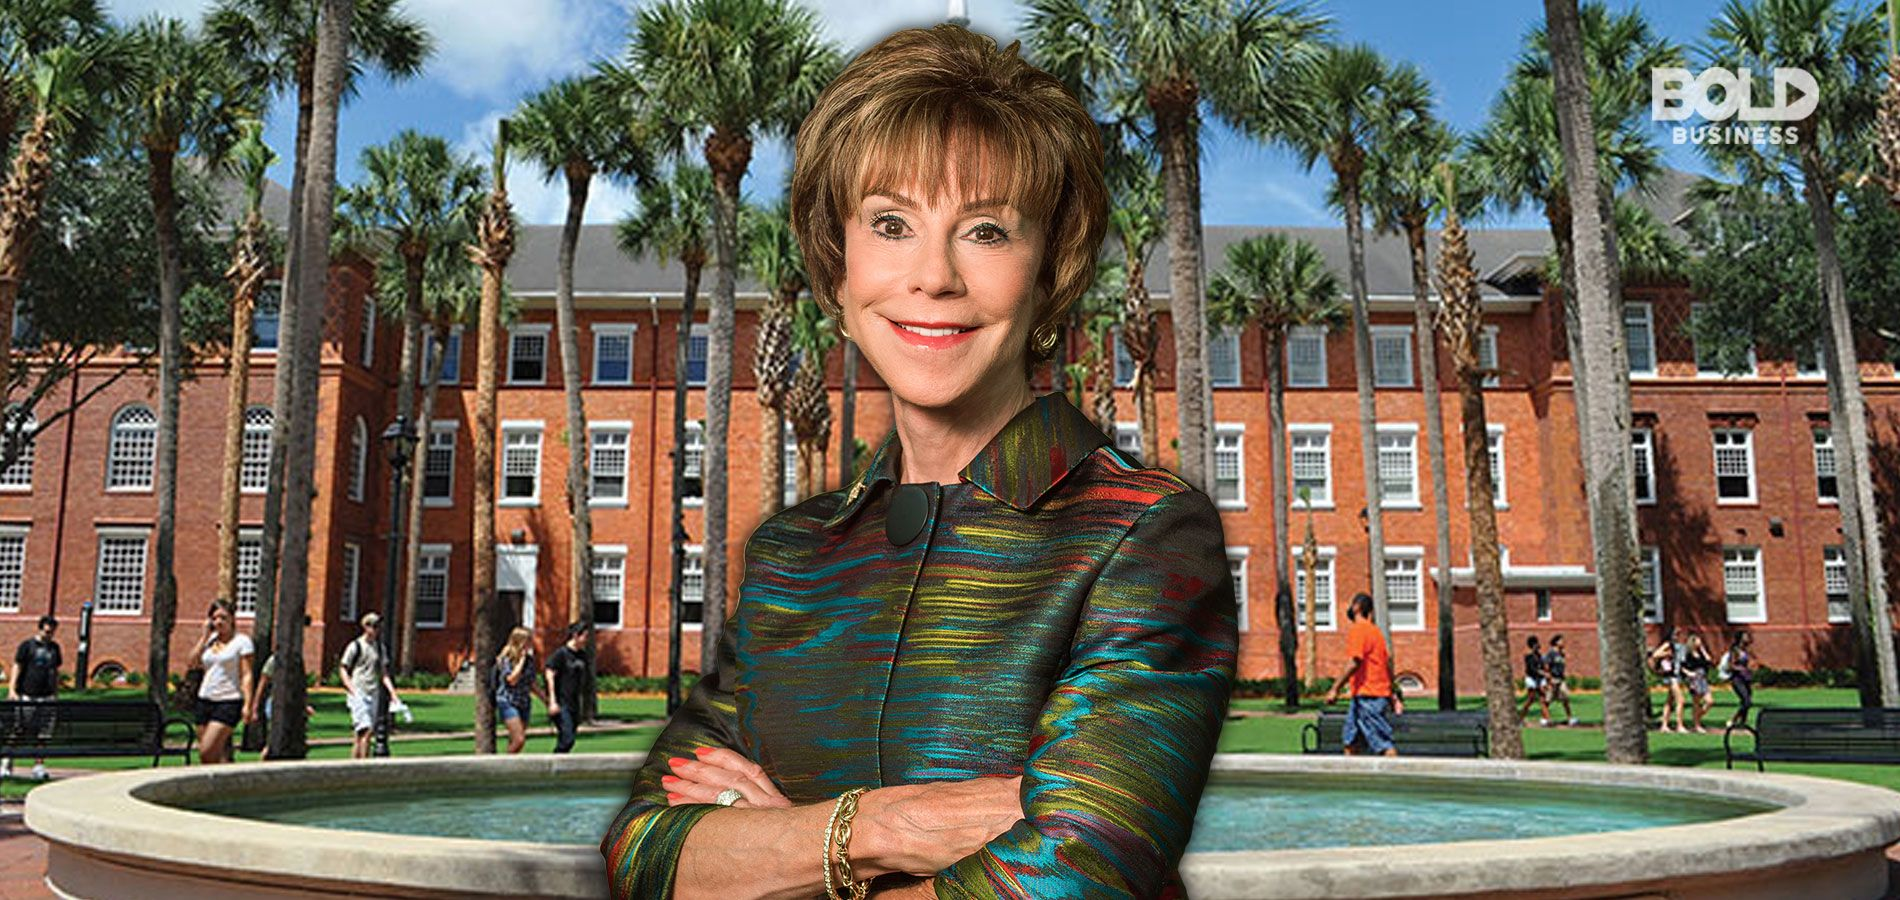 As a testament to University of South Florida president Judy Genshaft's bold leadership, USF has become a highly-regarded institution.